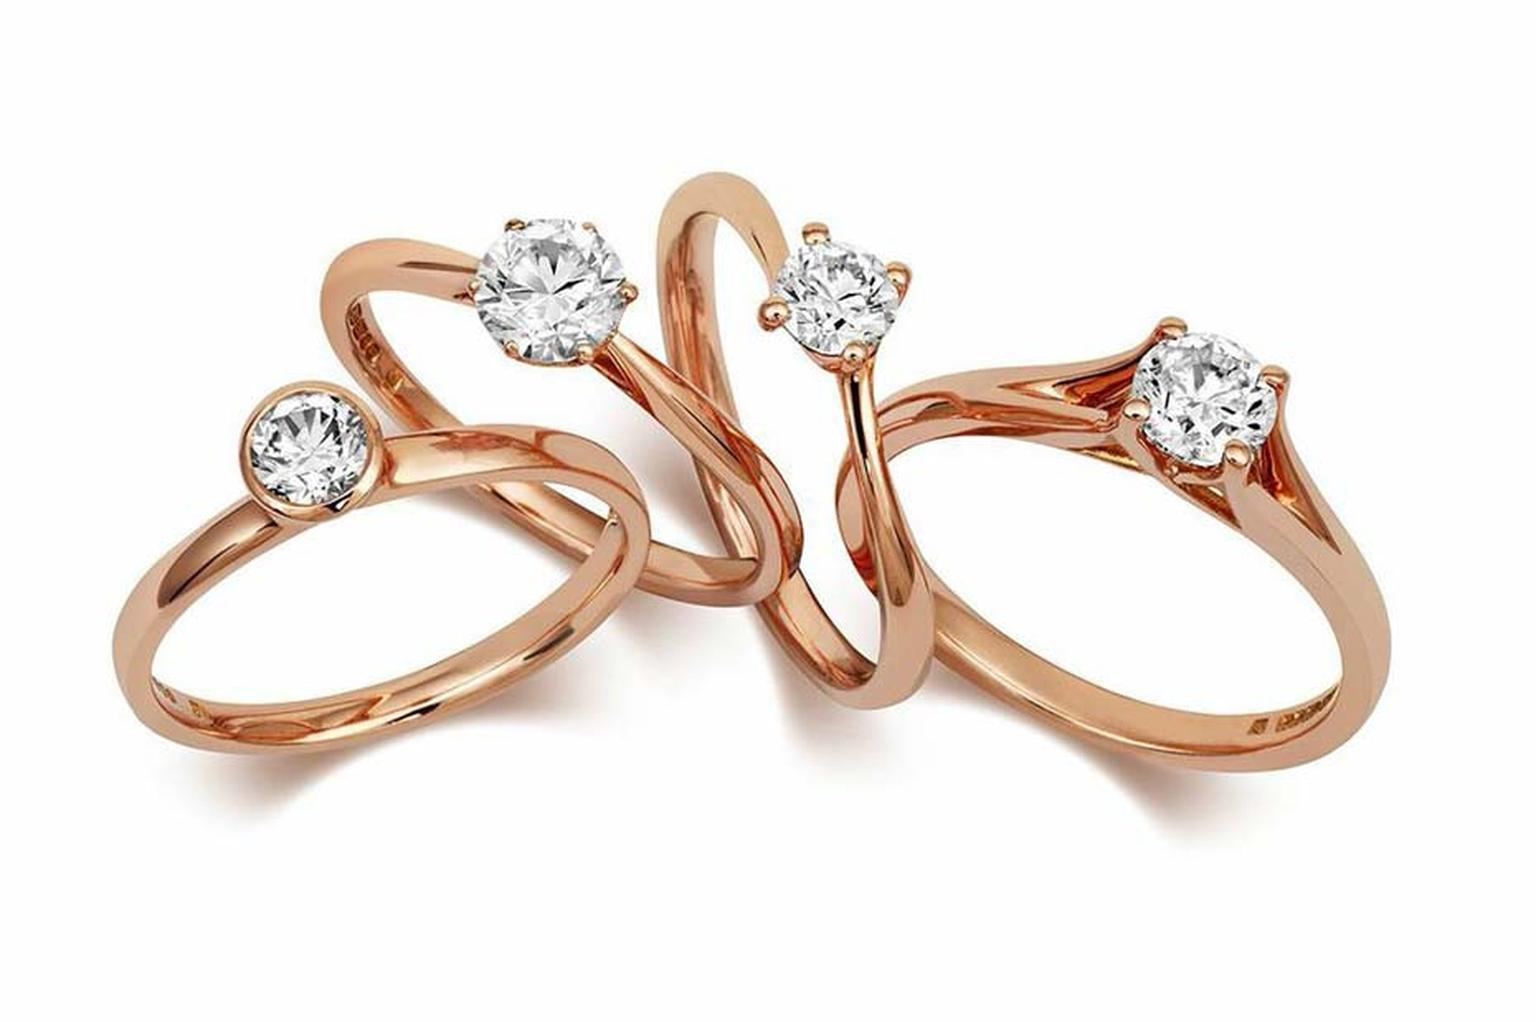 CRED ethical engagement rings in Fairtrade rose gold.